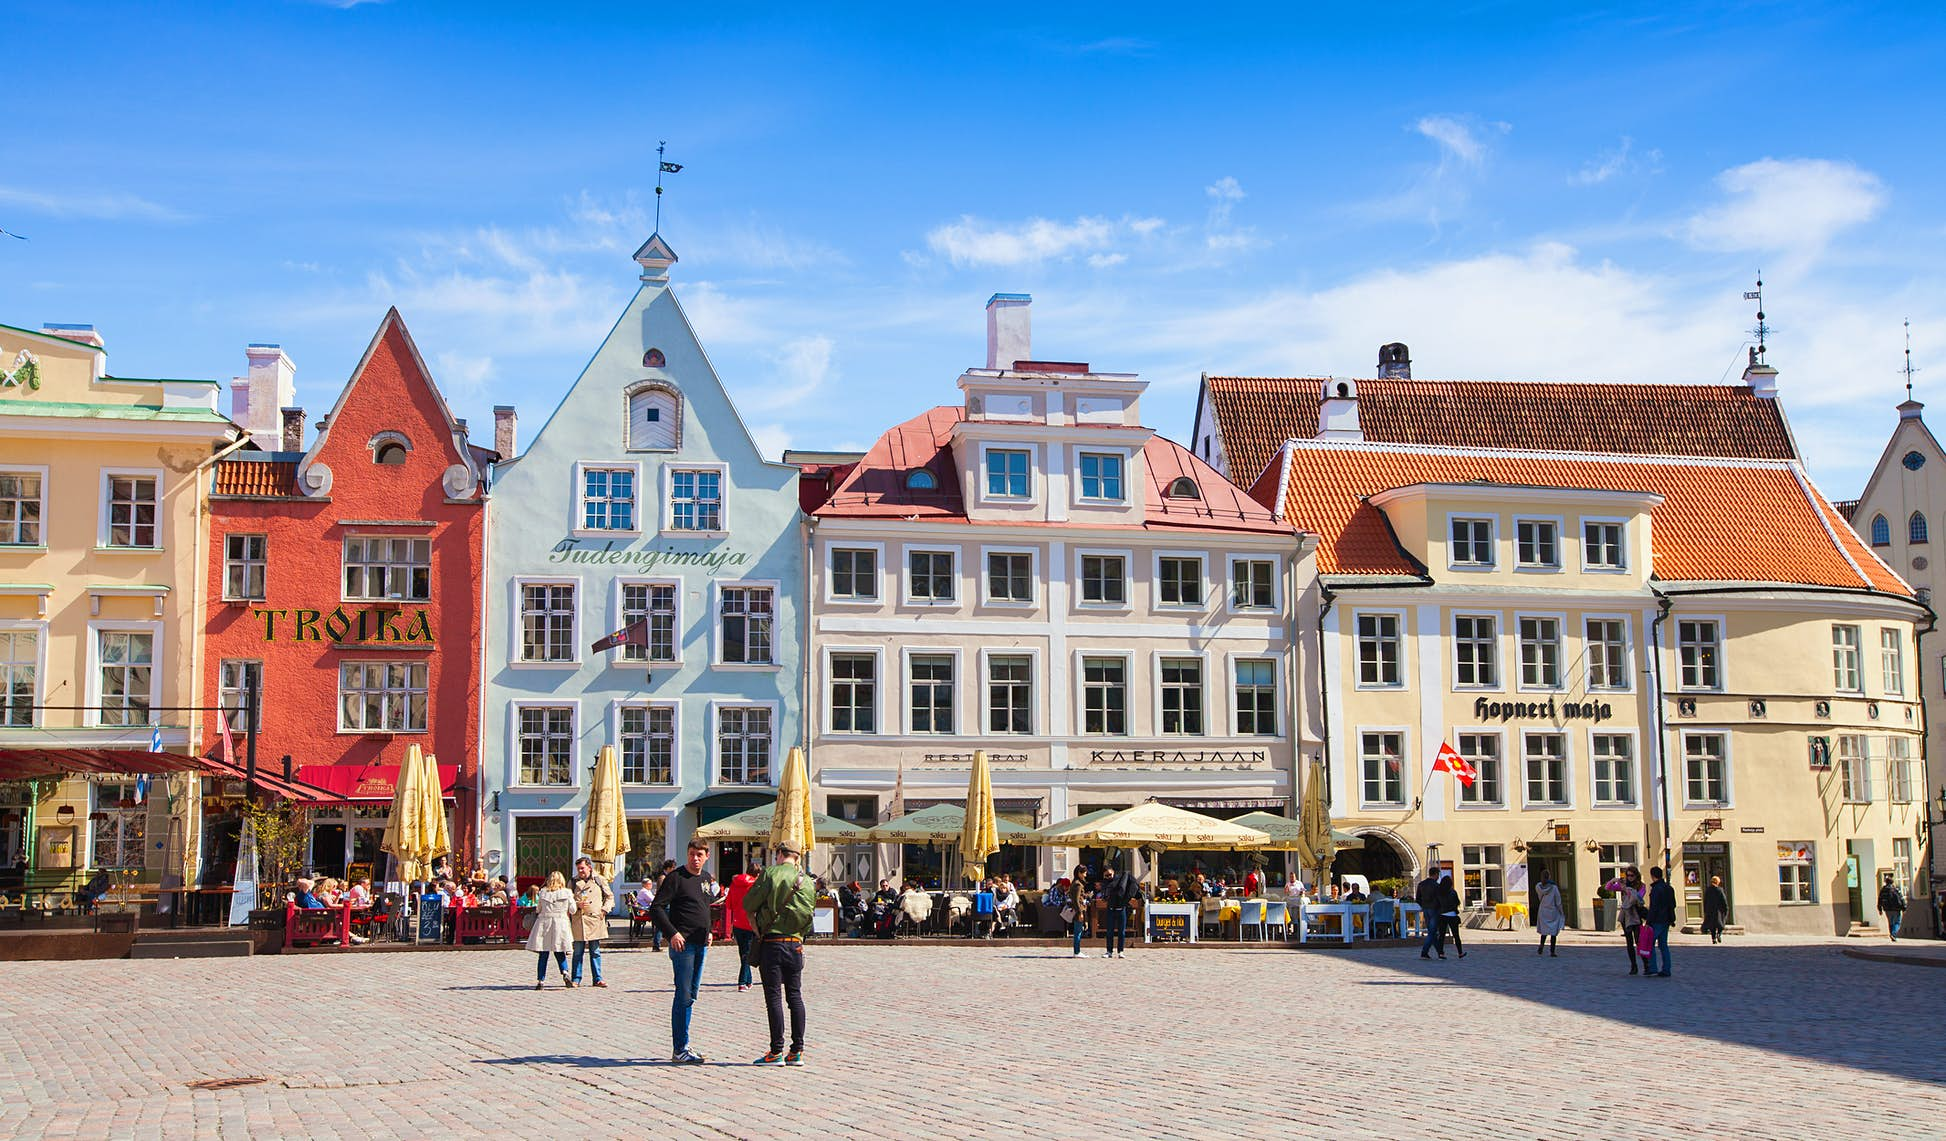 Town Hall square in central old Tallinn © Evannovostro/Shutterstock